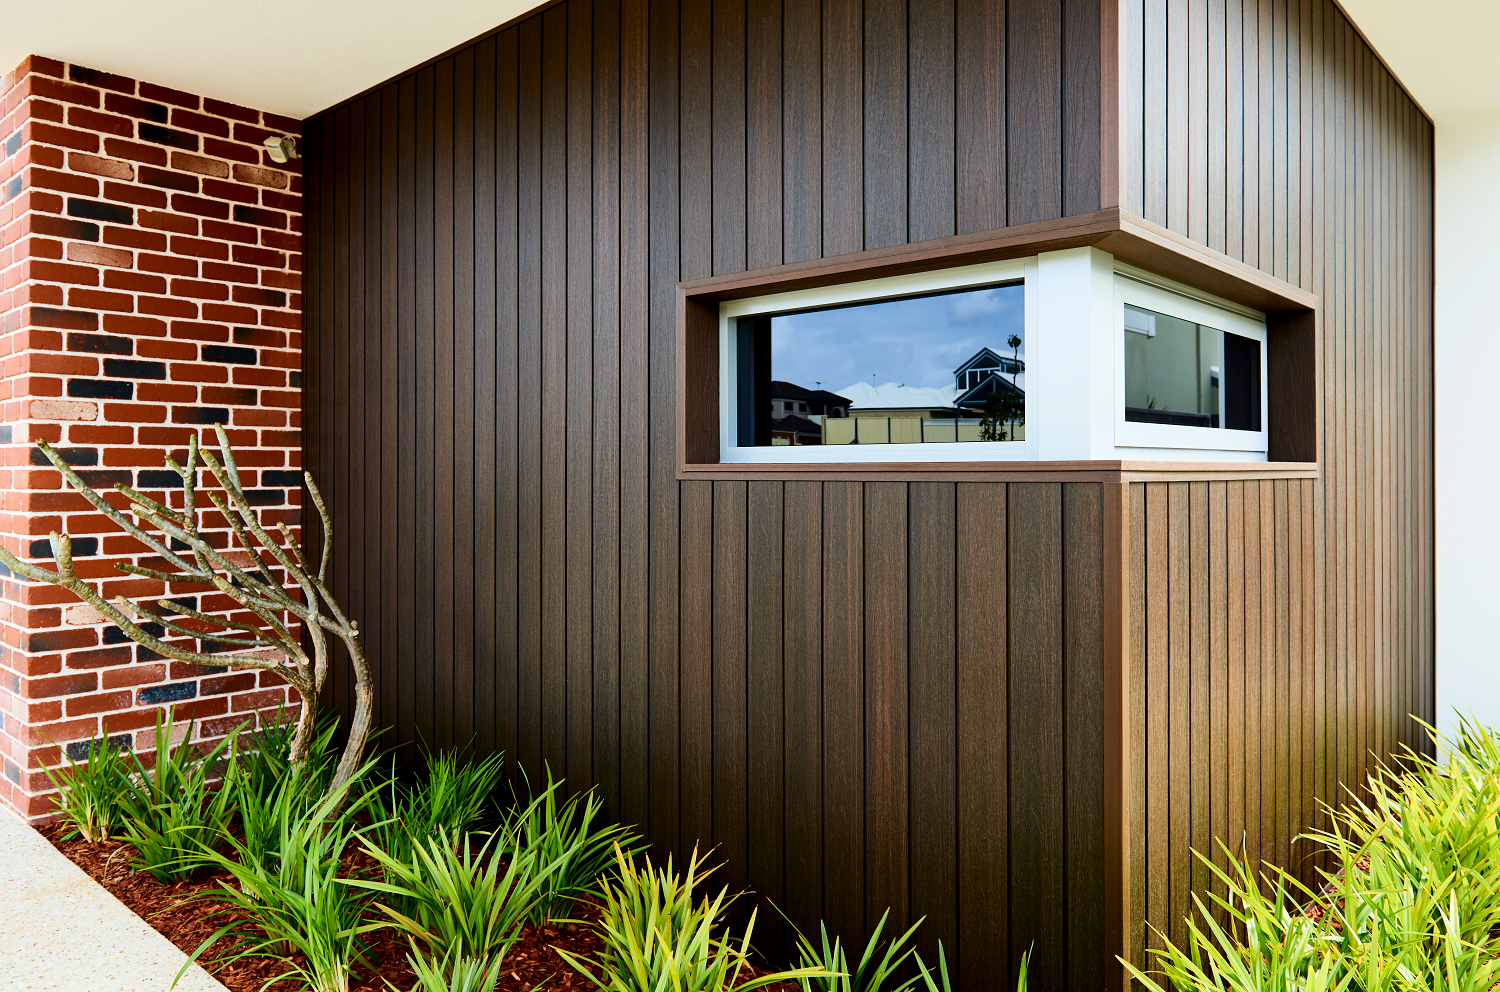 New Techwood Cladding Just Eco Timber Melbourne